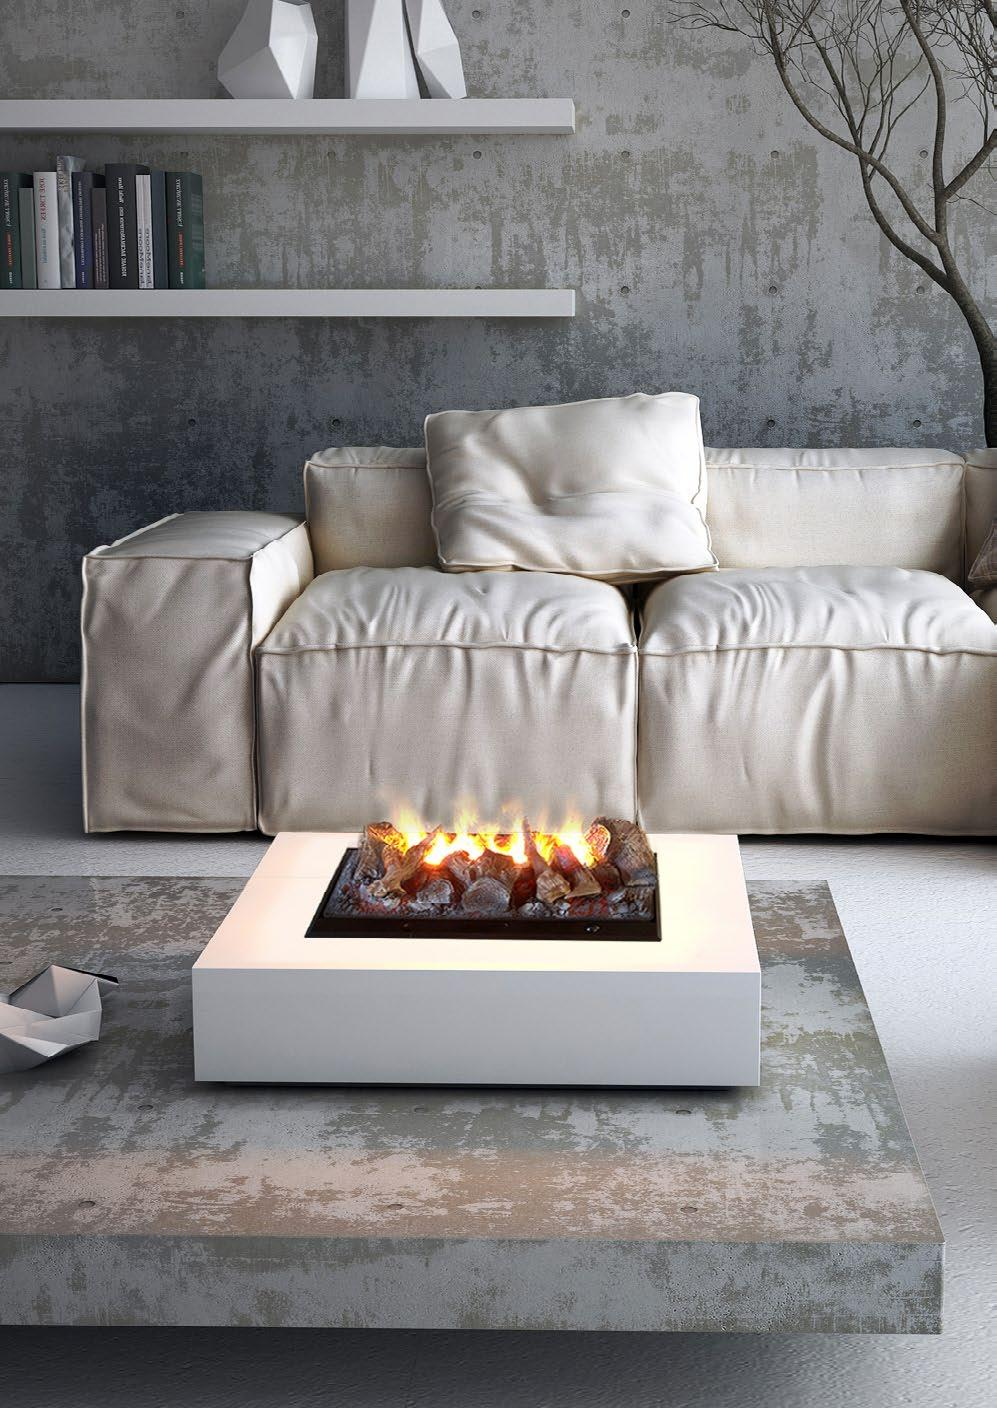 Idea Camino Borgosatollo Orari products maisonfire caminetti d arredo. decorative